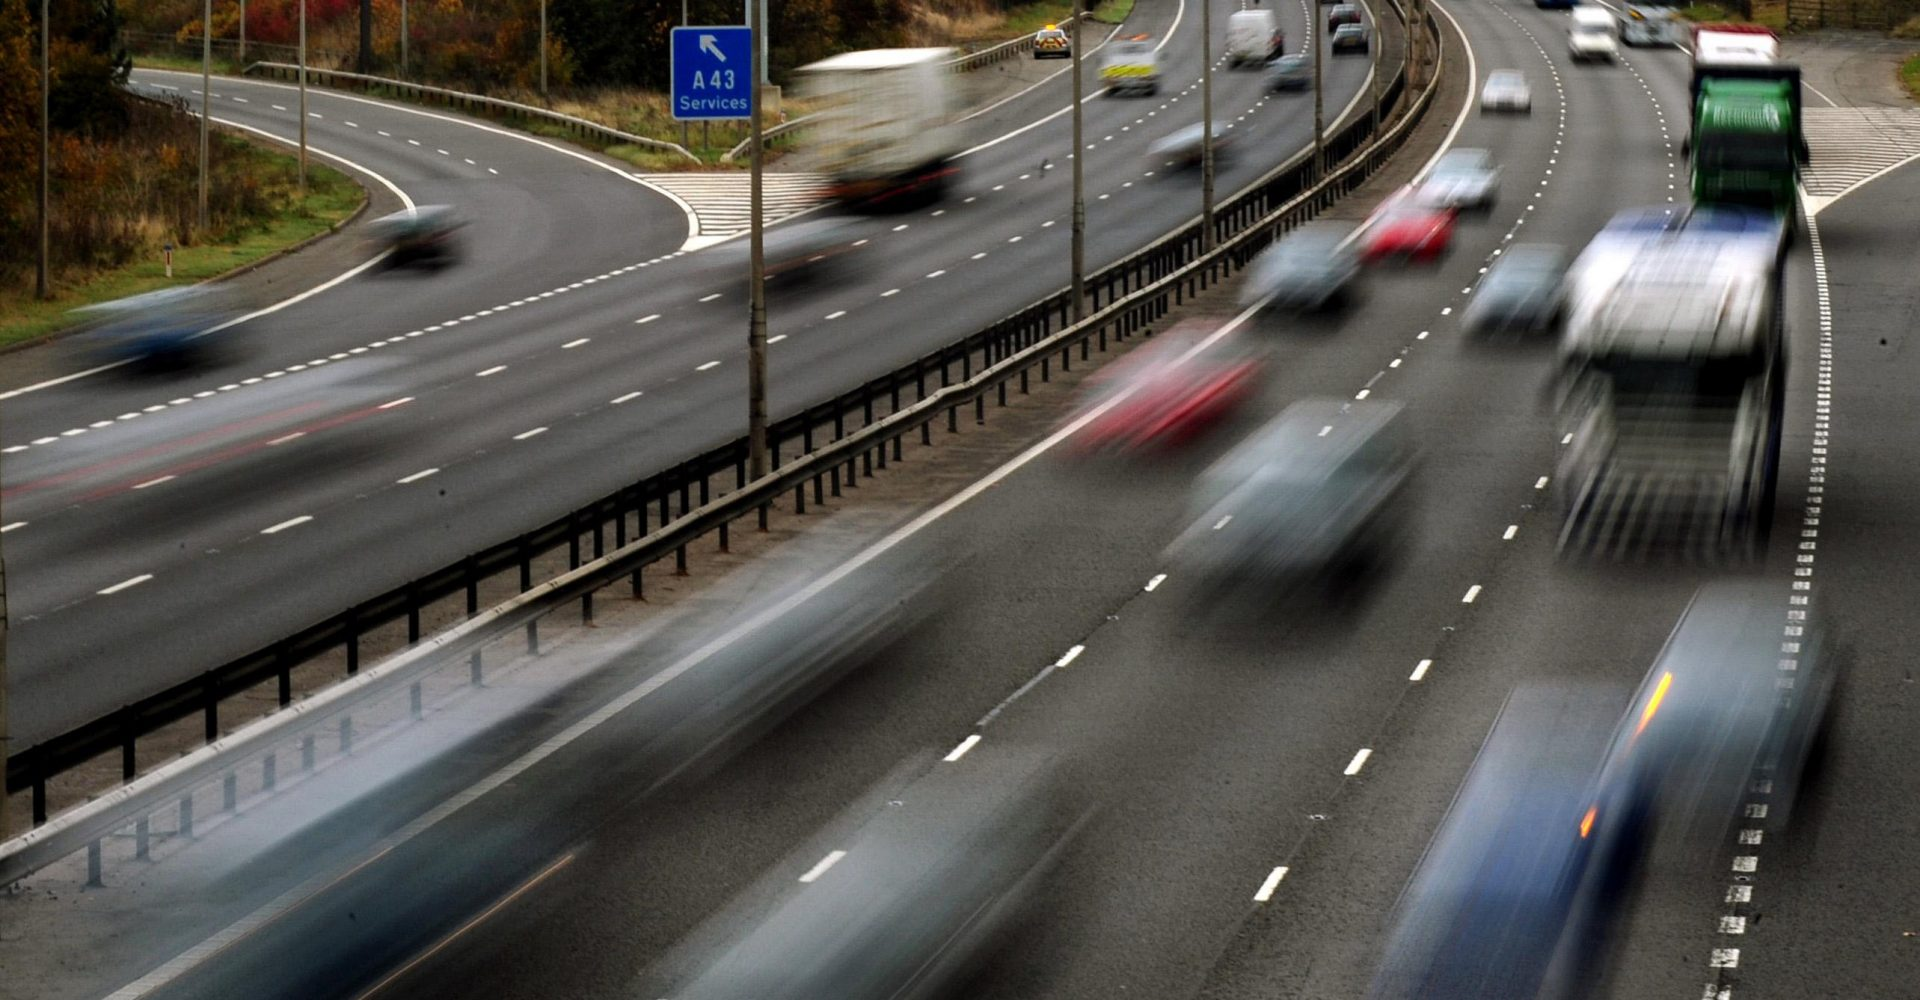 Could Highways England's tunnel vision really reduce pollution?